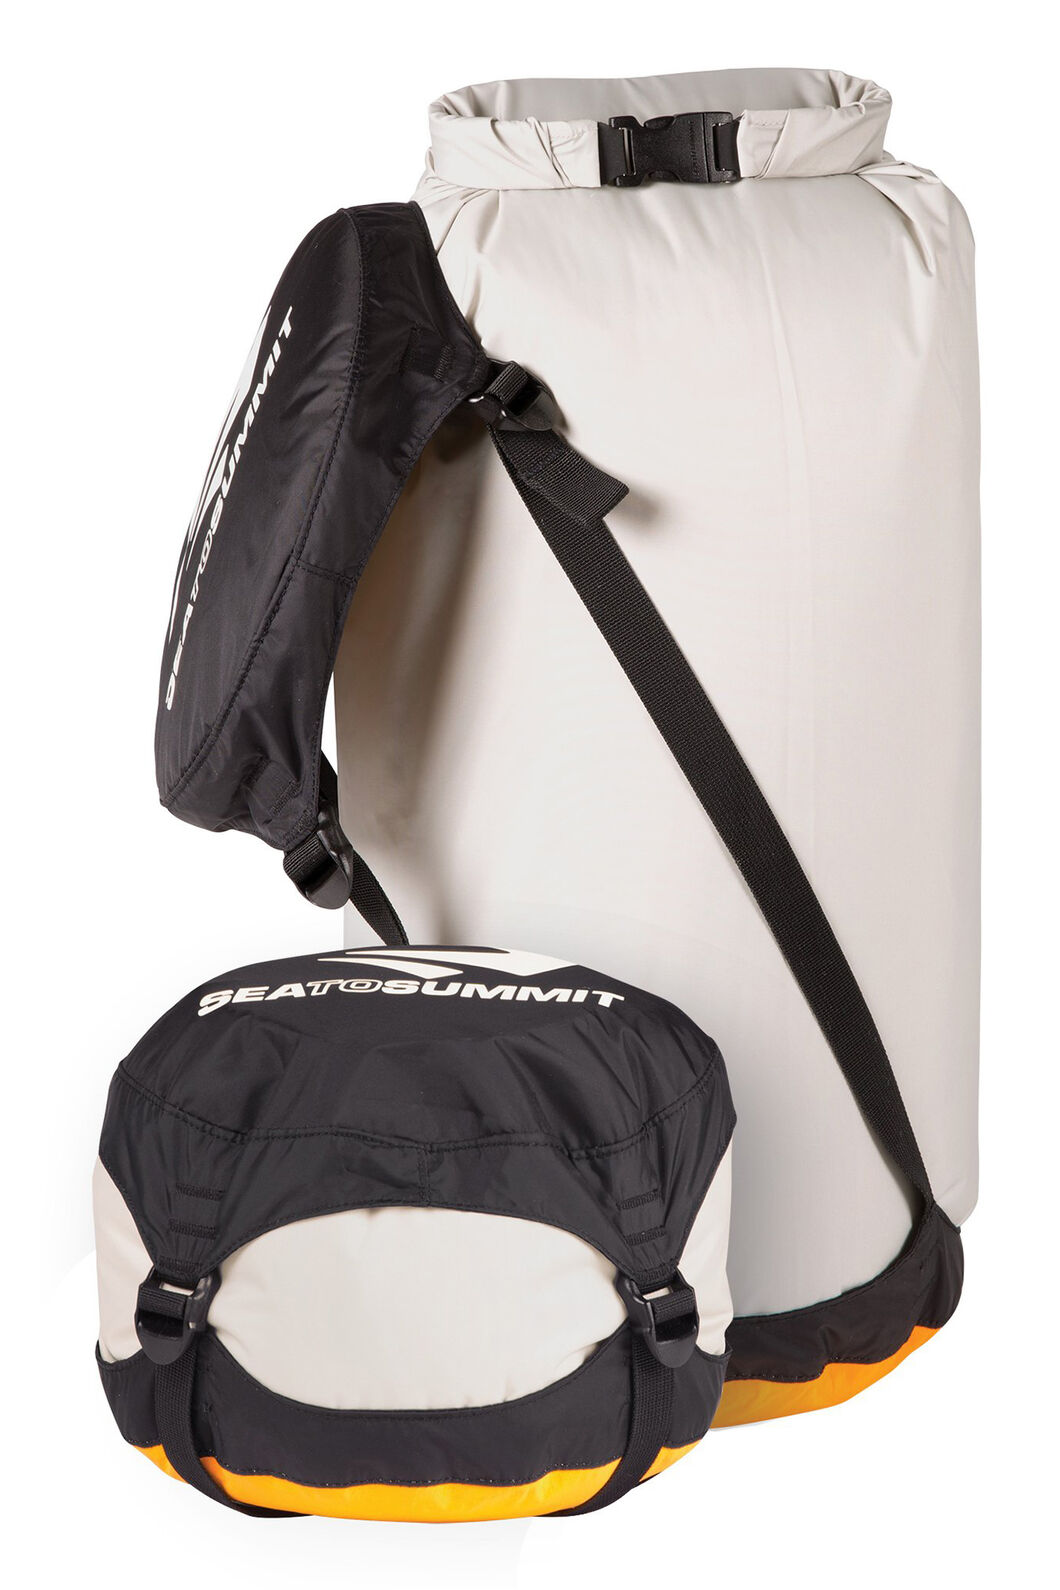 Sea to Summit all Compression Sack Dry Bag, None, hi-res